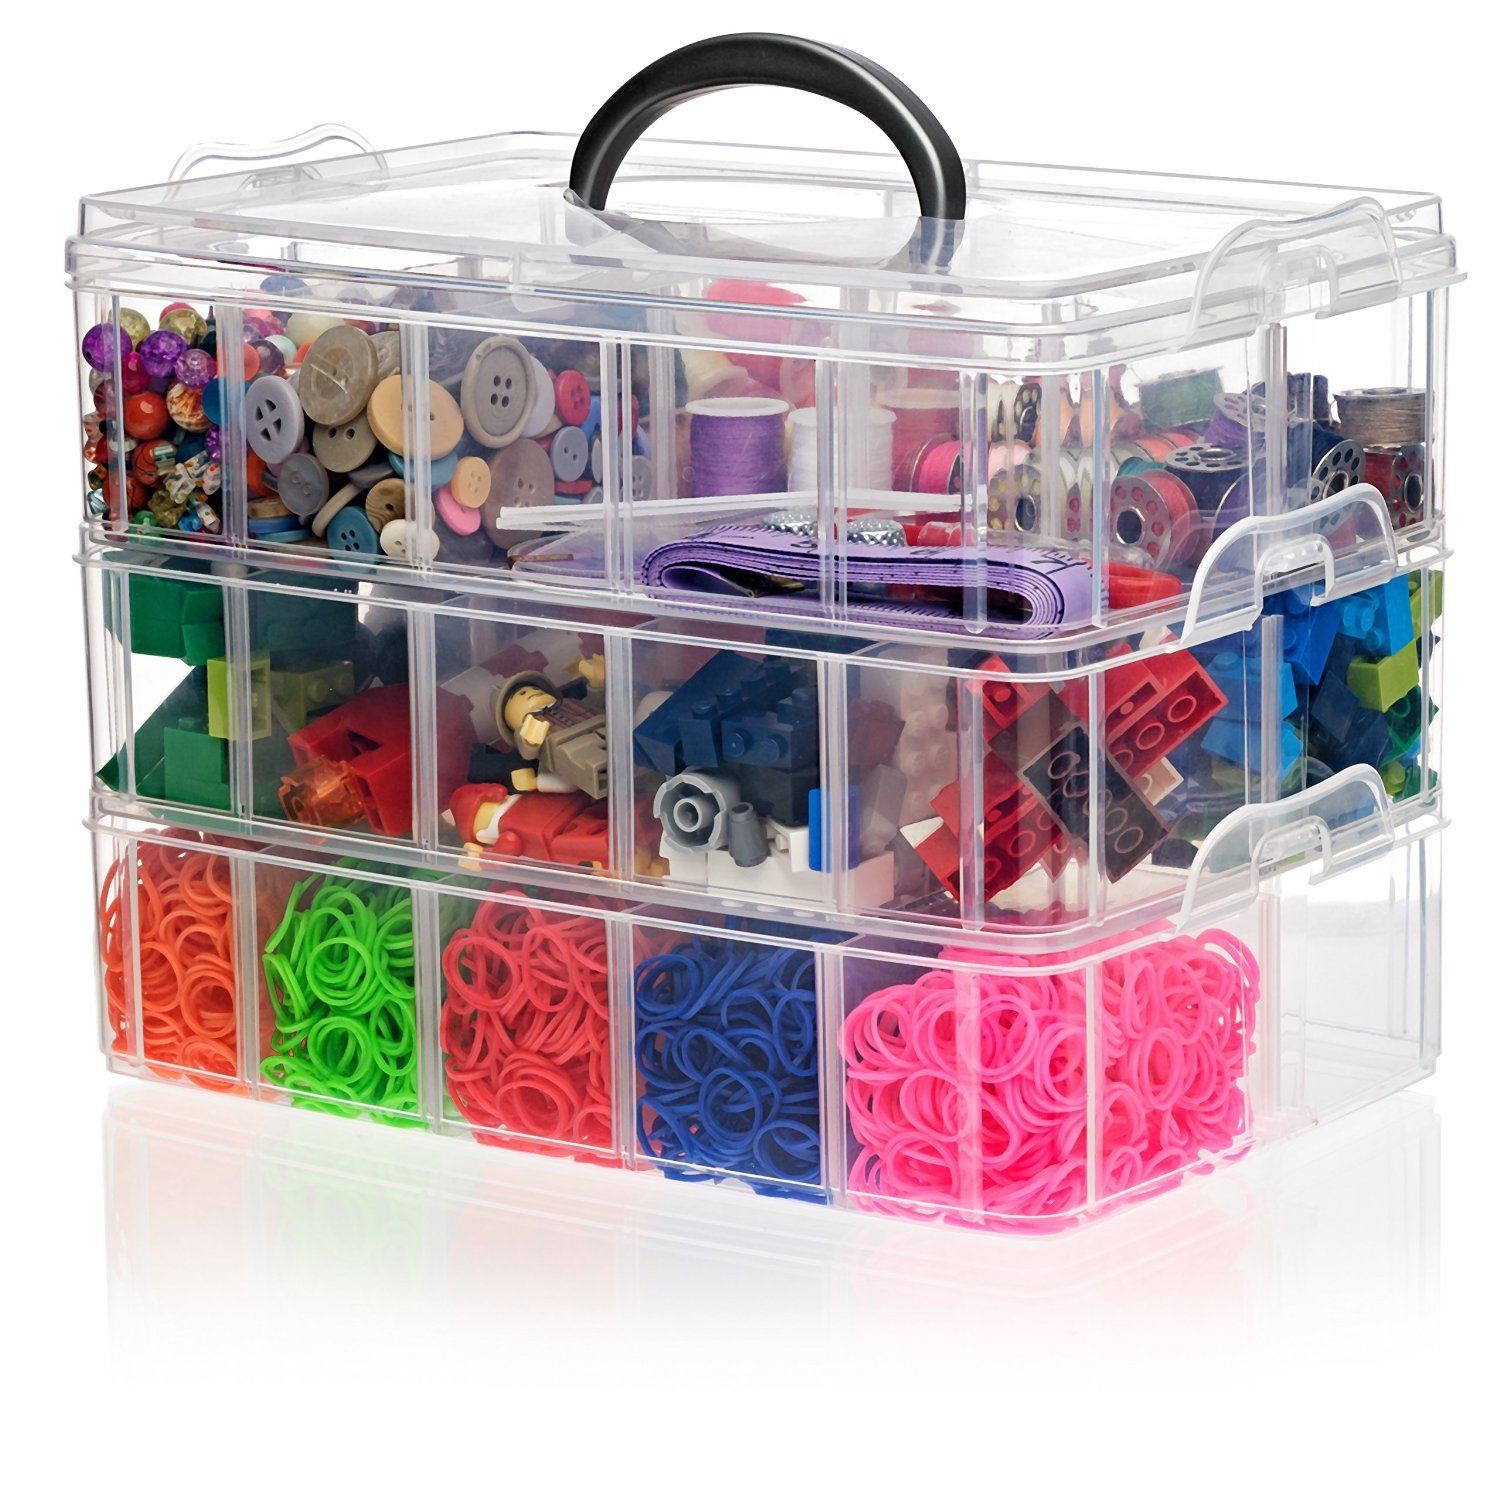 Amazon com  California Home Goods Snapcube Stackable Arts   Crafts  Organizer Case  Clear  Perfect Storage for Legos  Shopkins Littlest Pet Shop  Figures. Amazon com  California Home Goods Snapcube Stackable Arts   Crafts